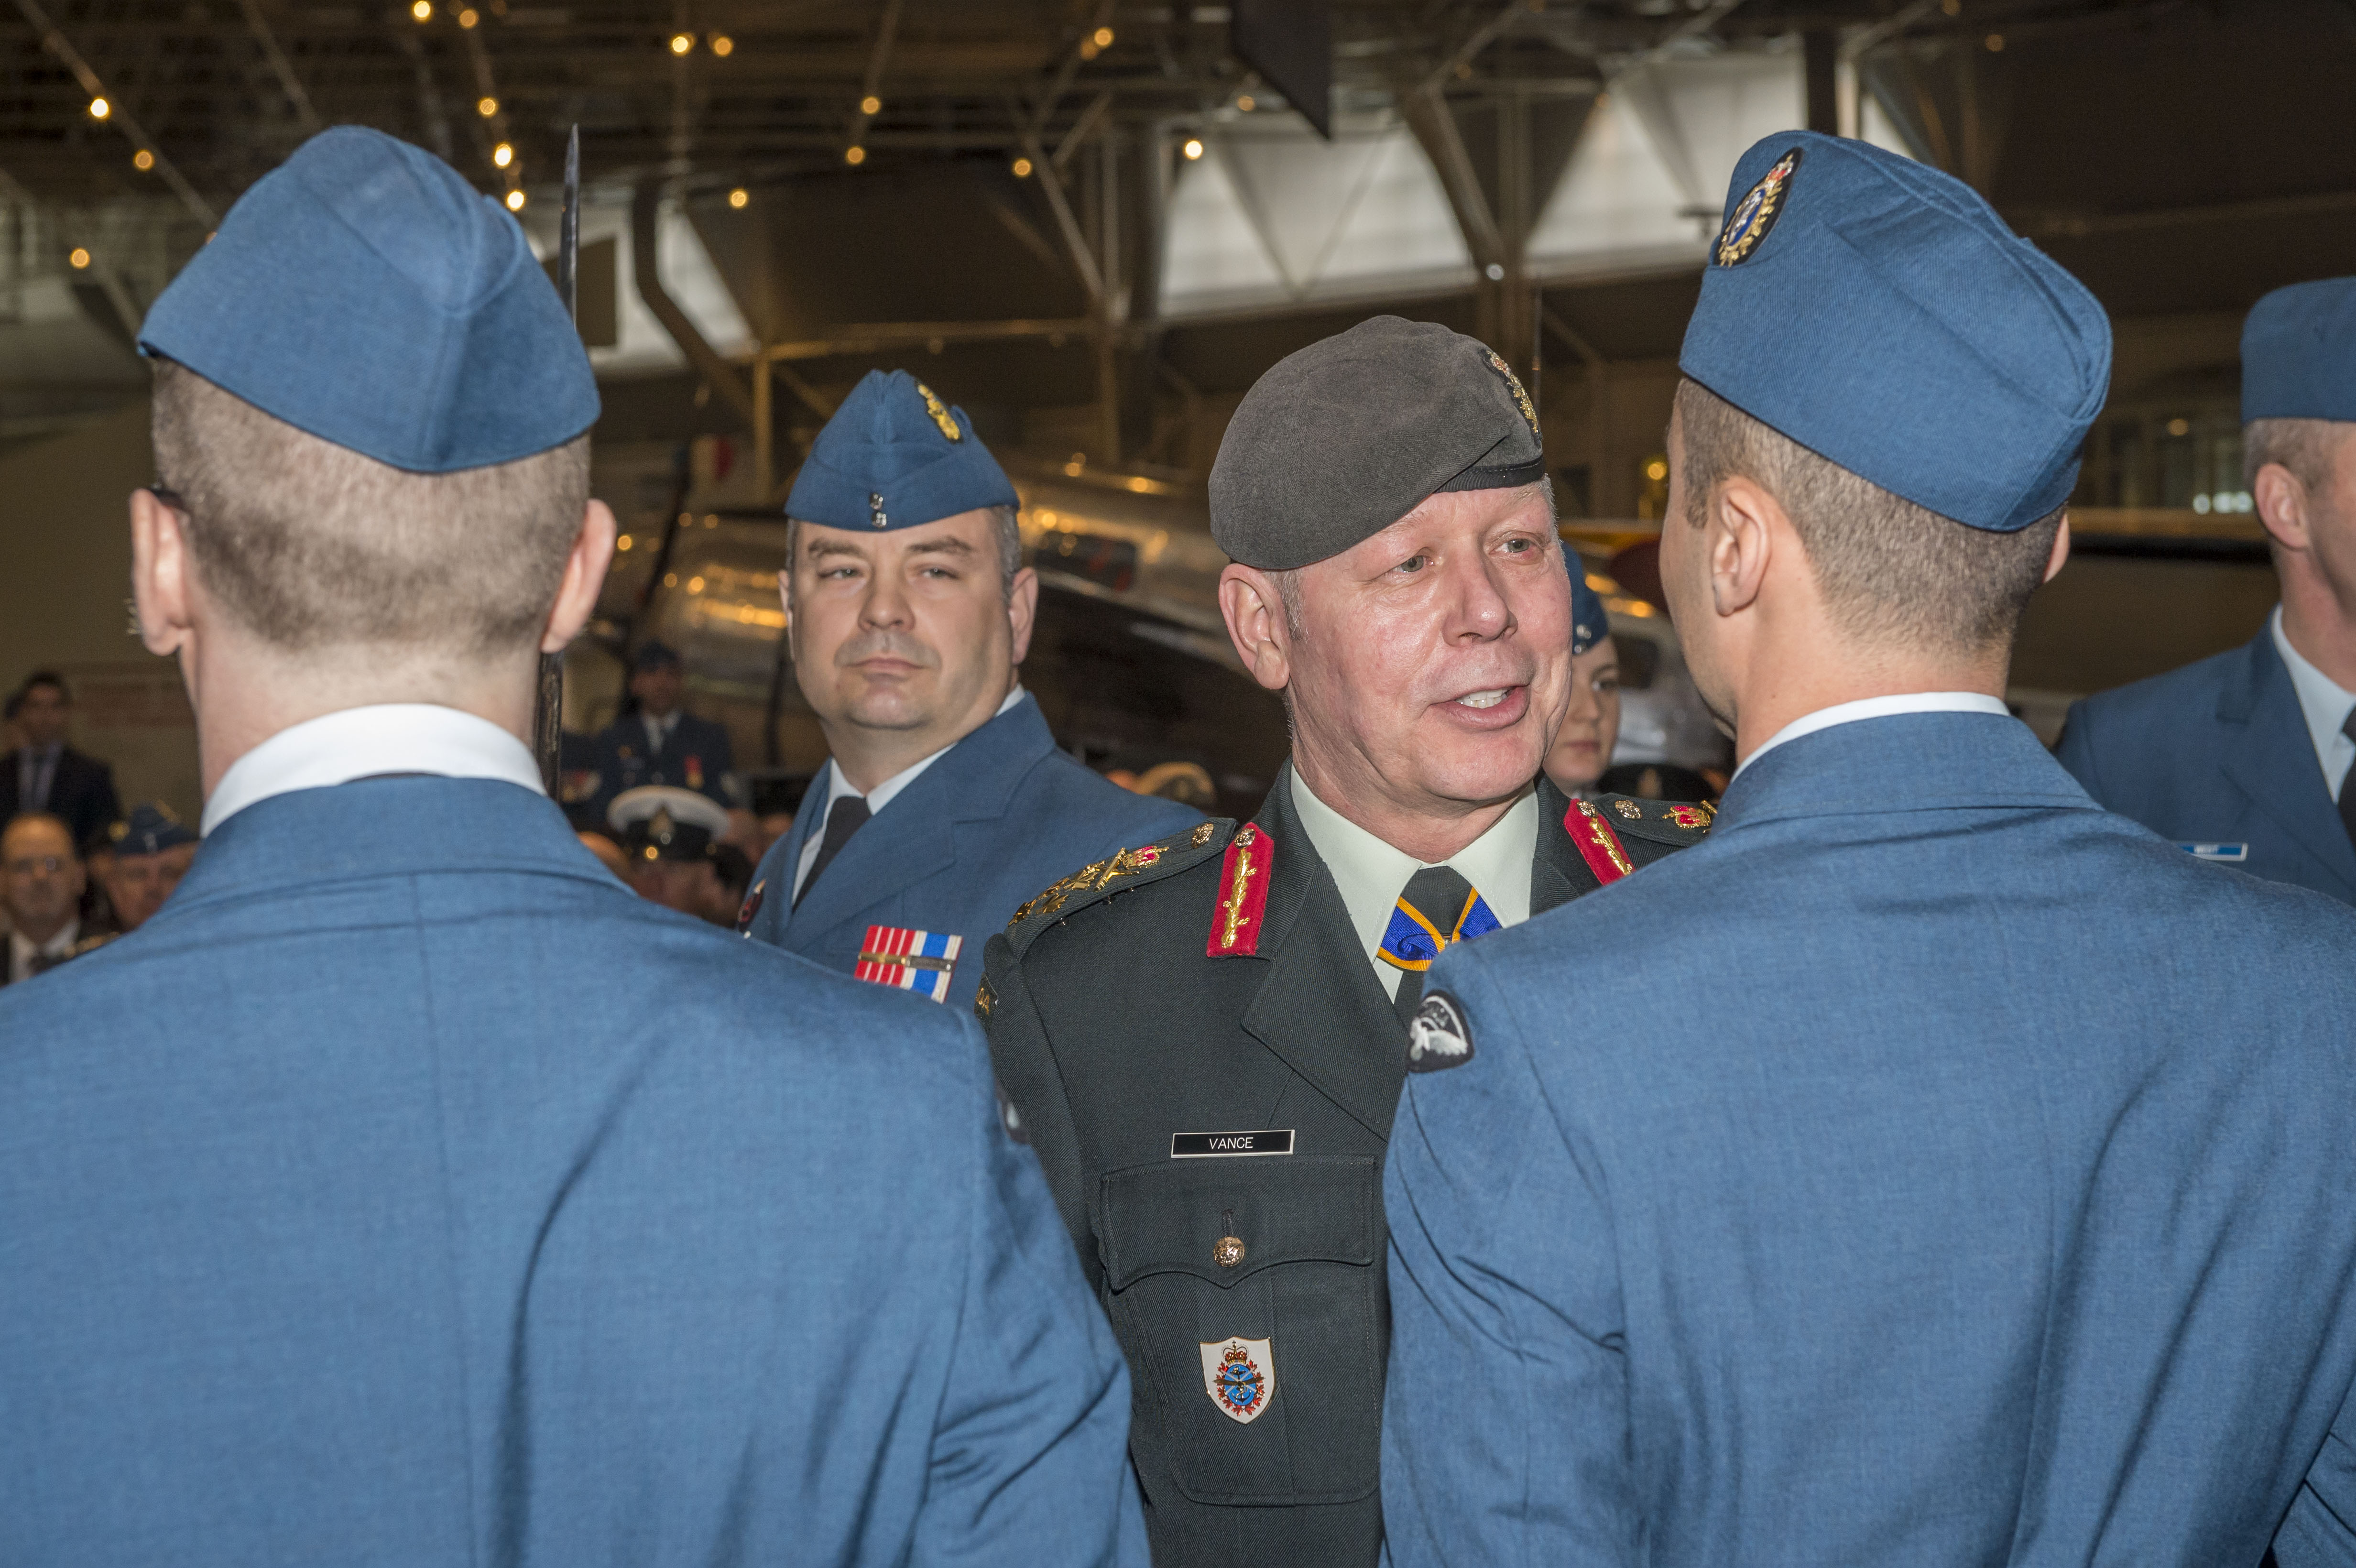 General Jonathan Vance, chief of the defence staff, chats with a member of the Royal Canadian Air Force during the inspection of the Guard of Honour as part of the Change of Command ceremony. PHOTO: Corporal Alana Morin, FA03-2018-0040-029